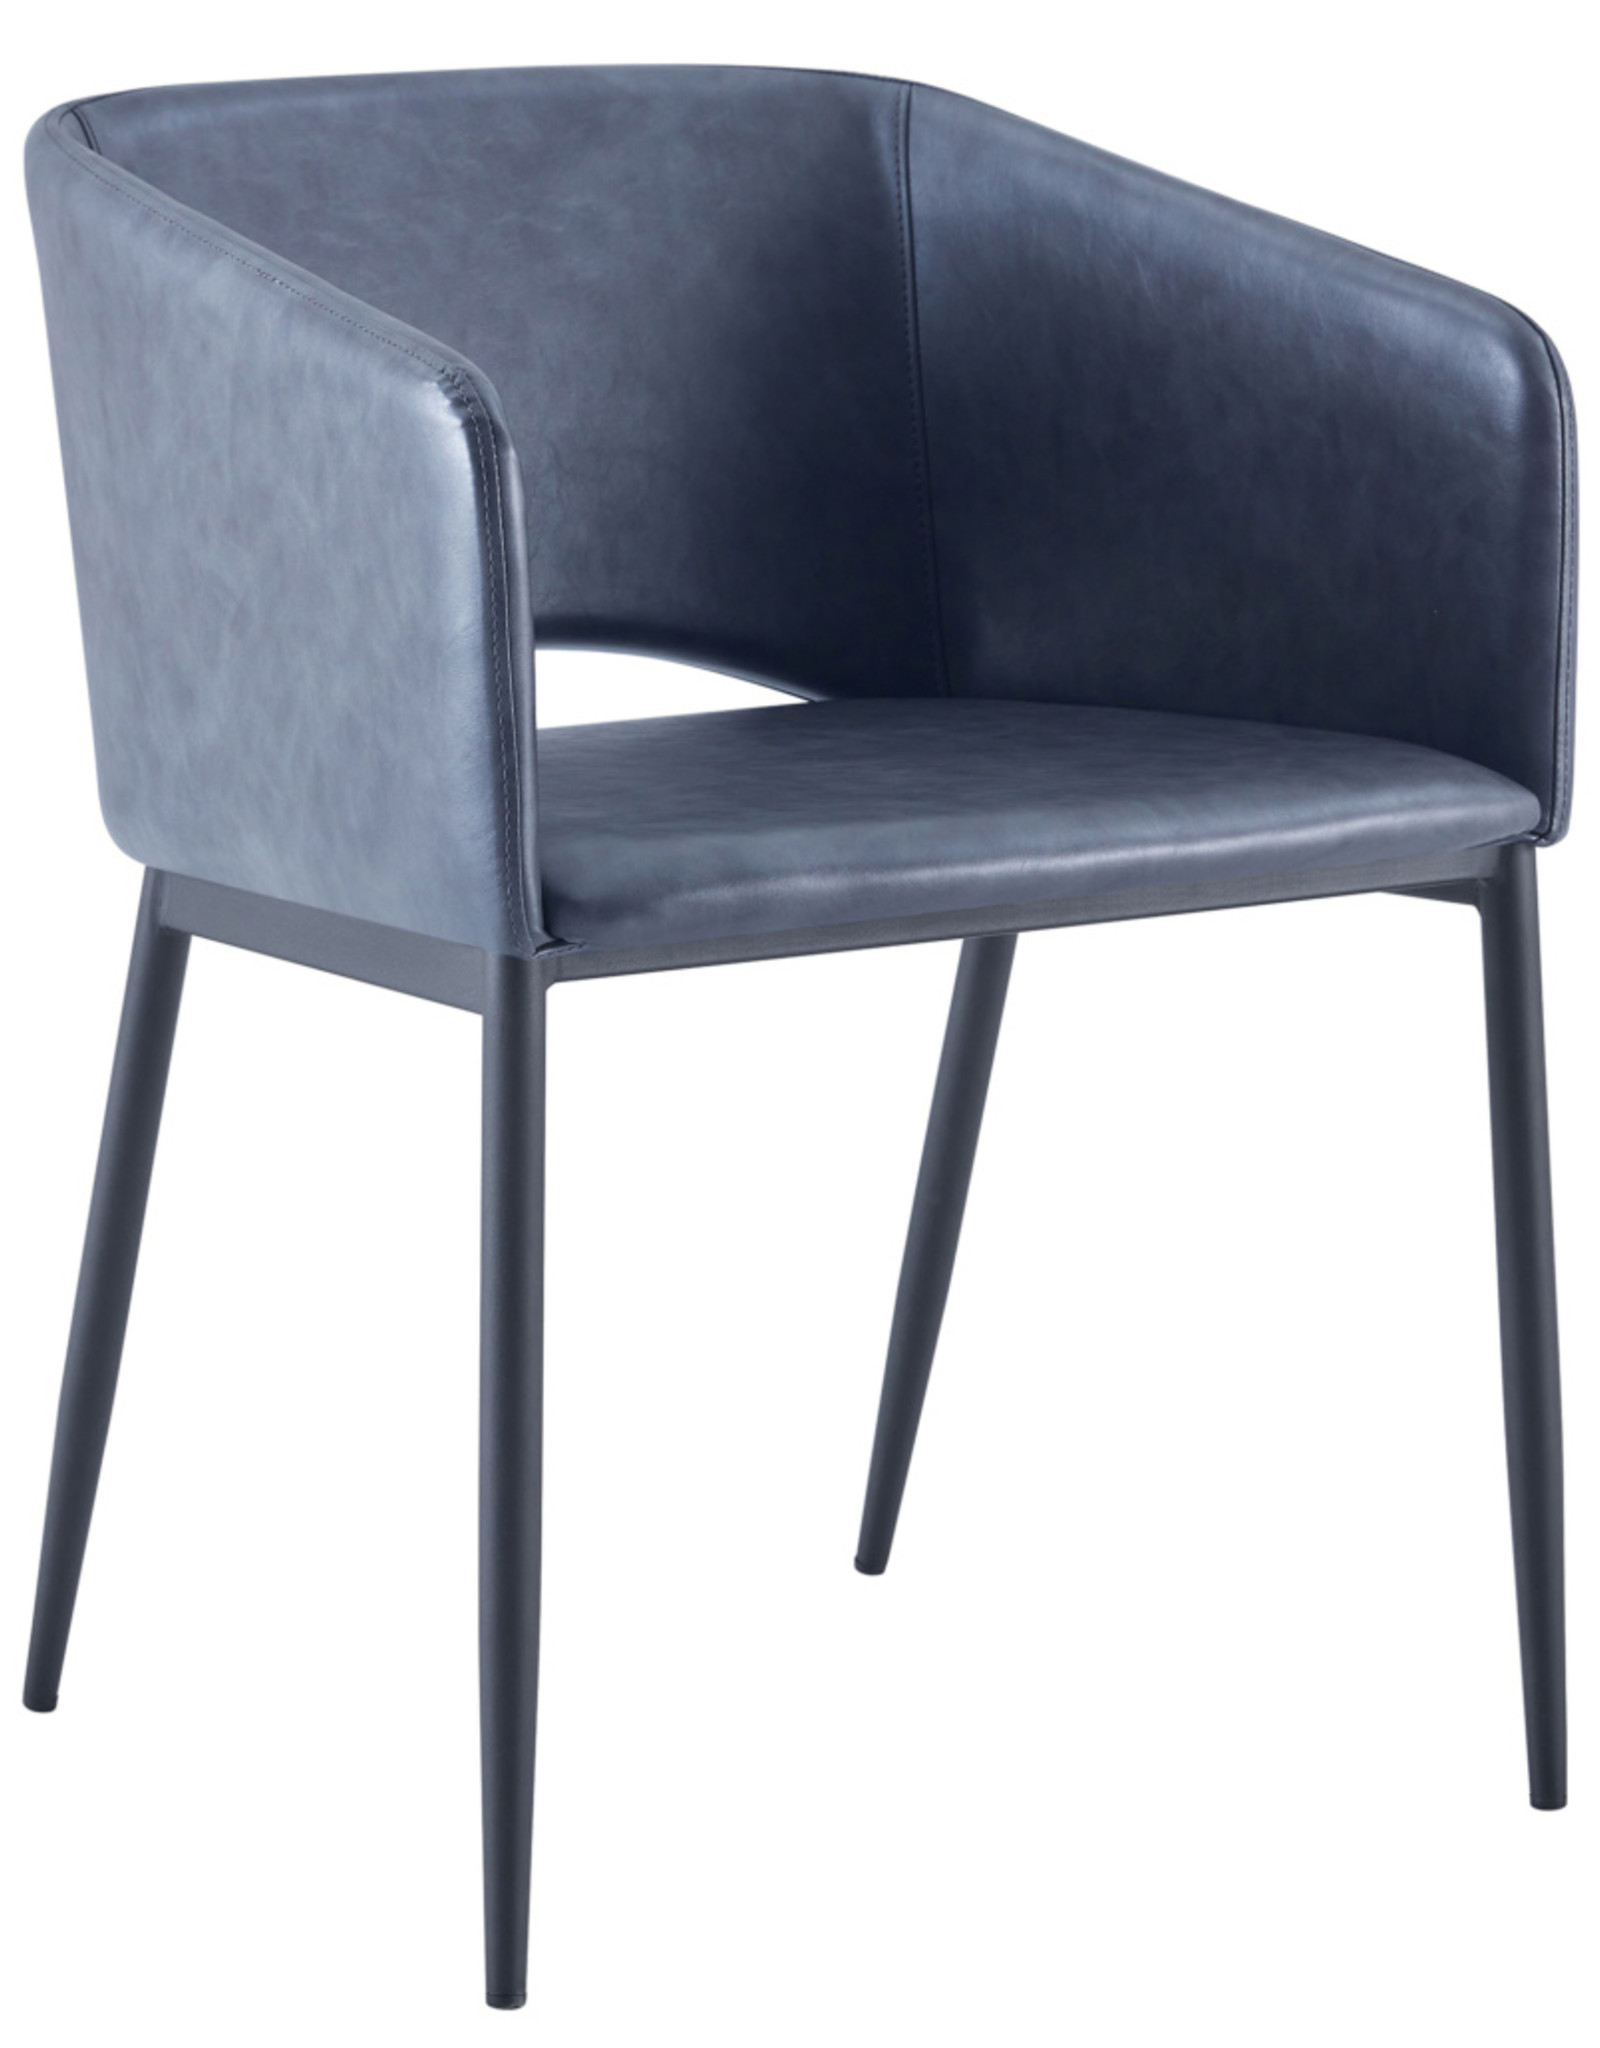 Cathay Cathay Lea-Rose Arm Dining Chair Grey 01-1998-GRY